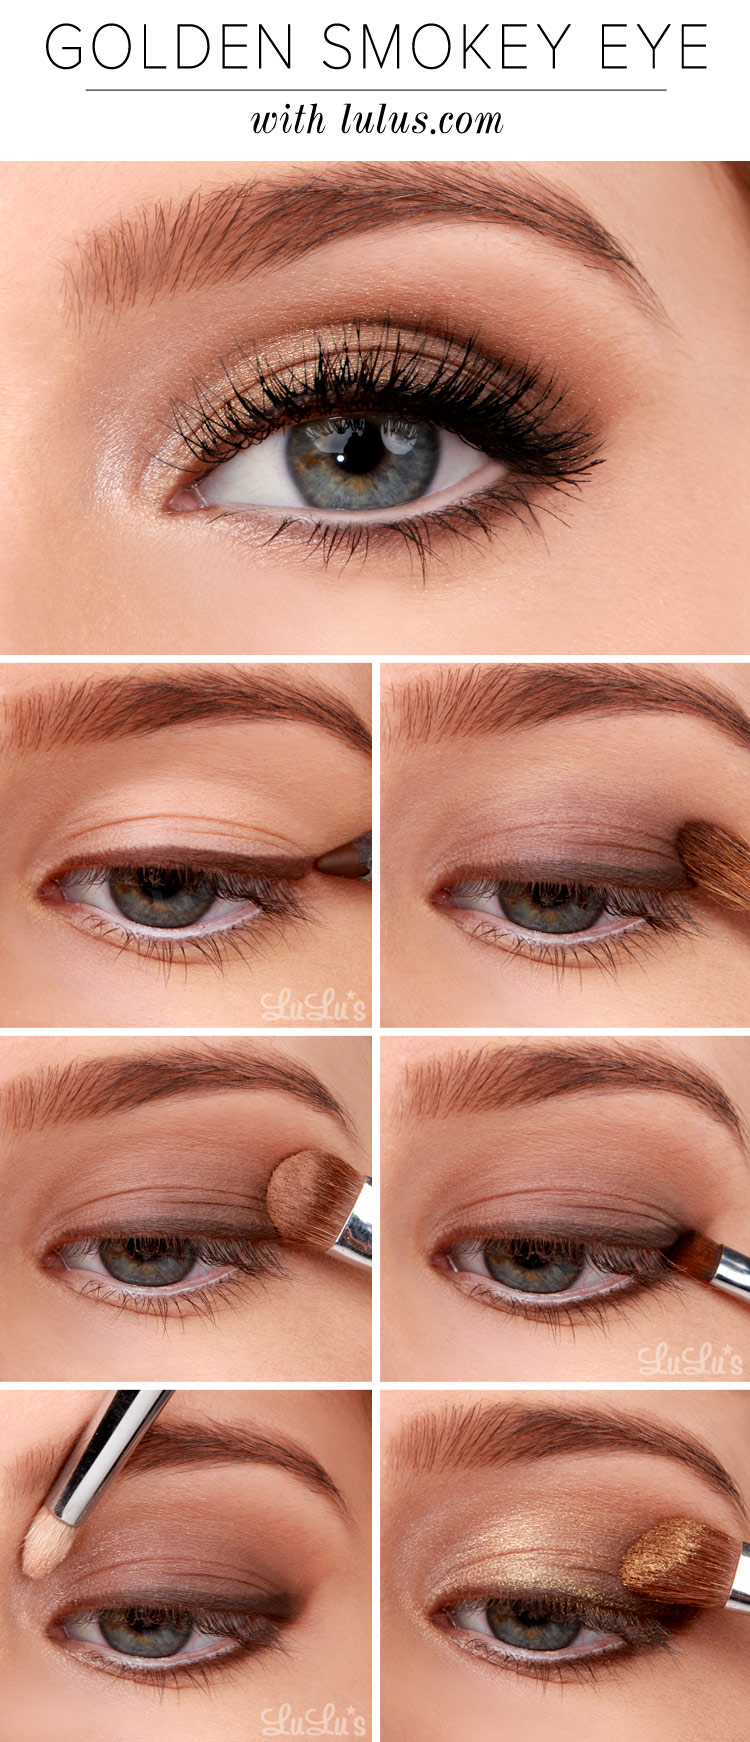 Golden Smokey Eye